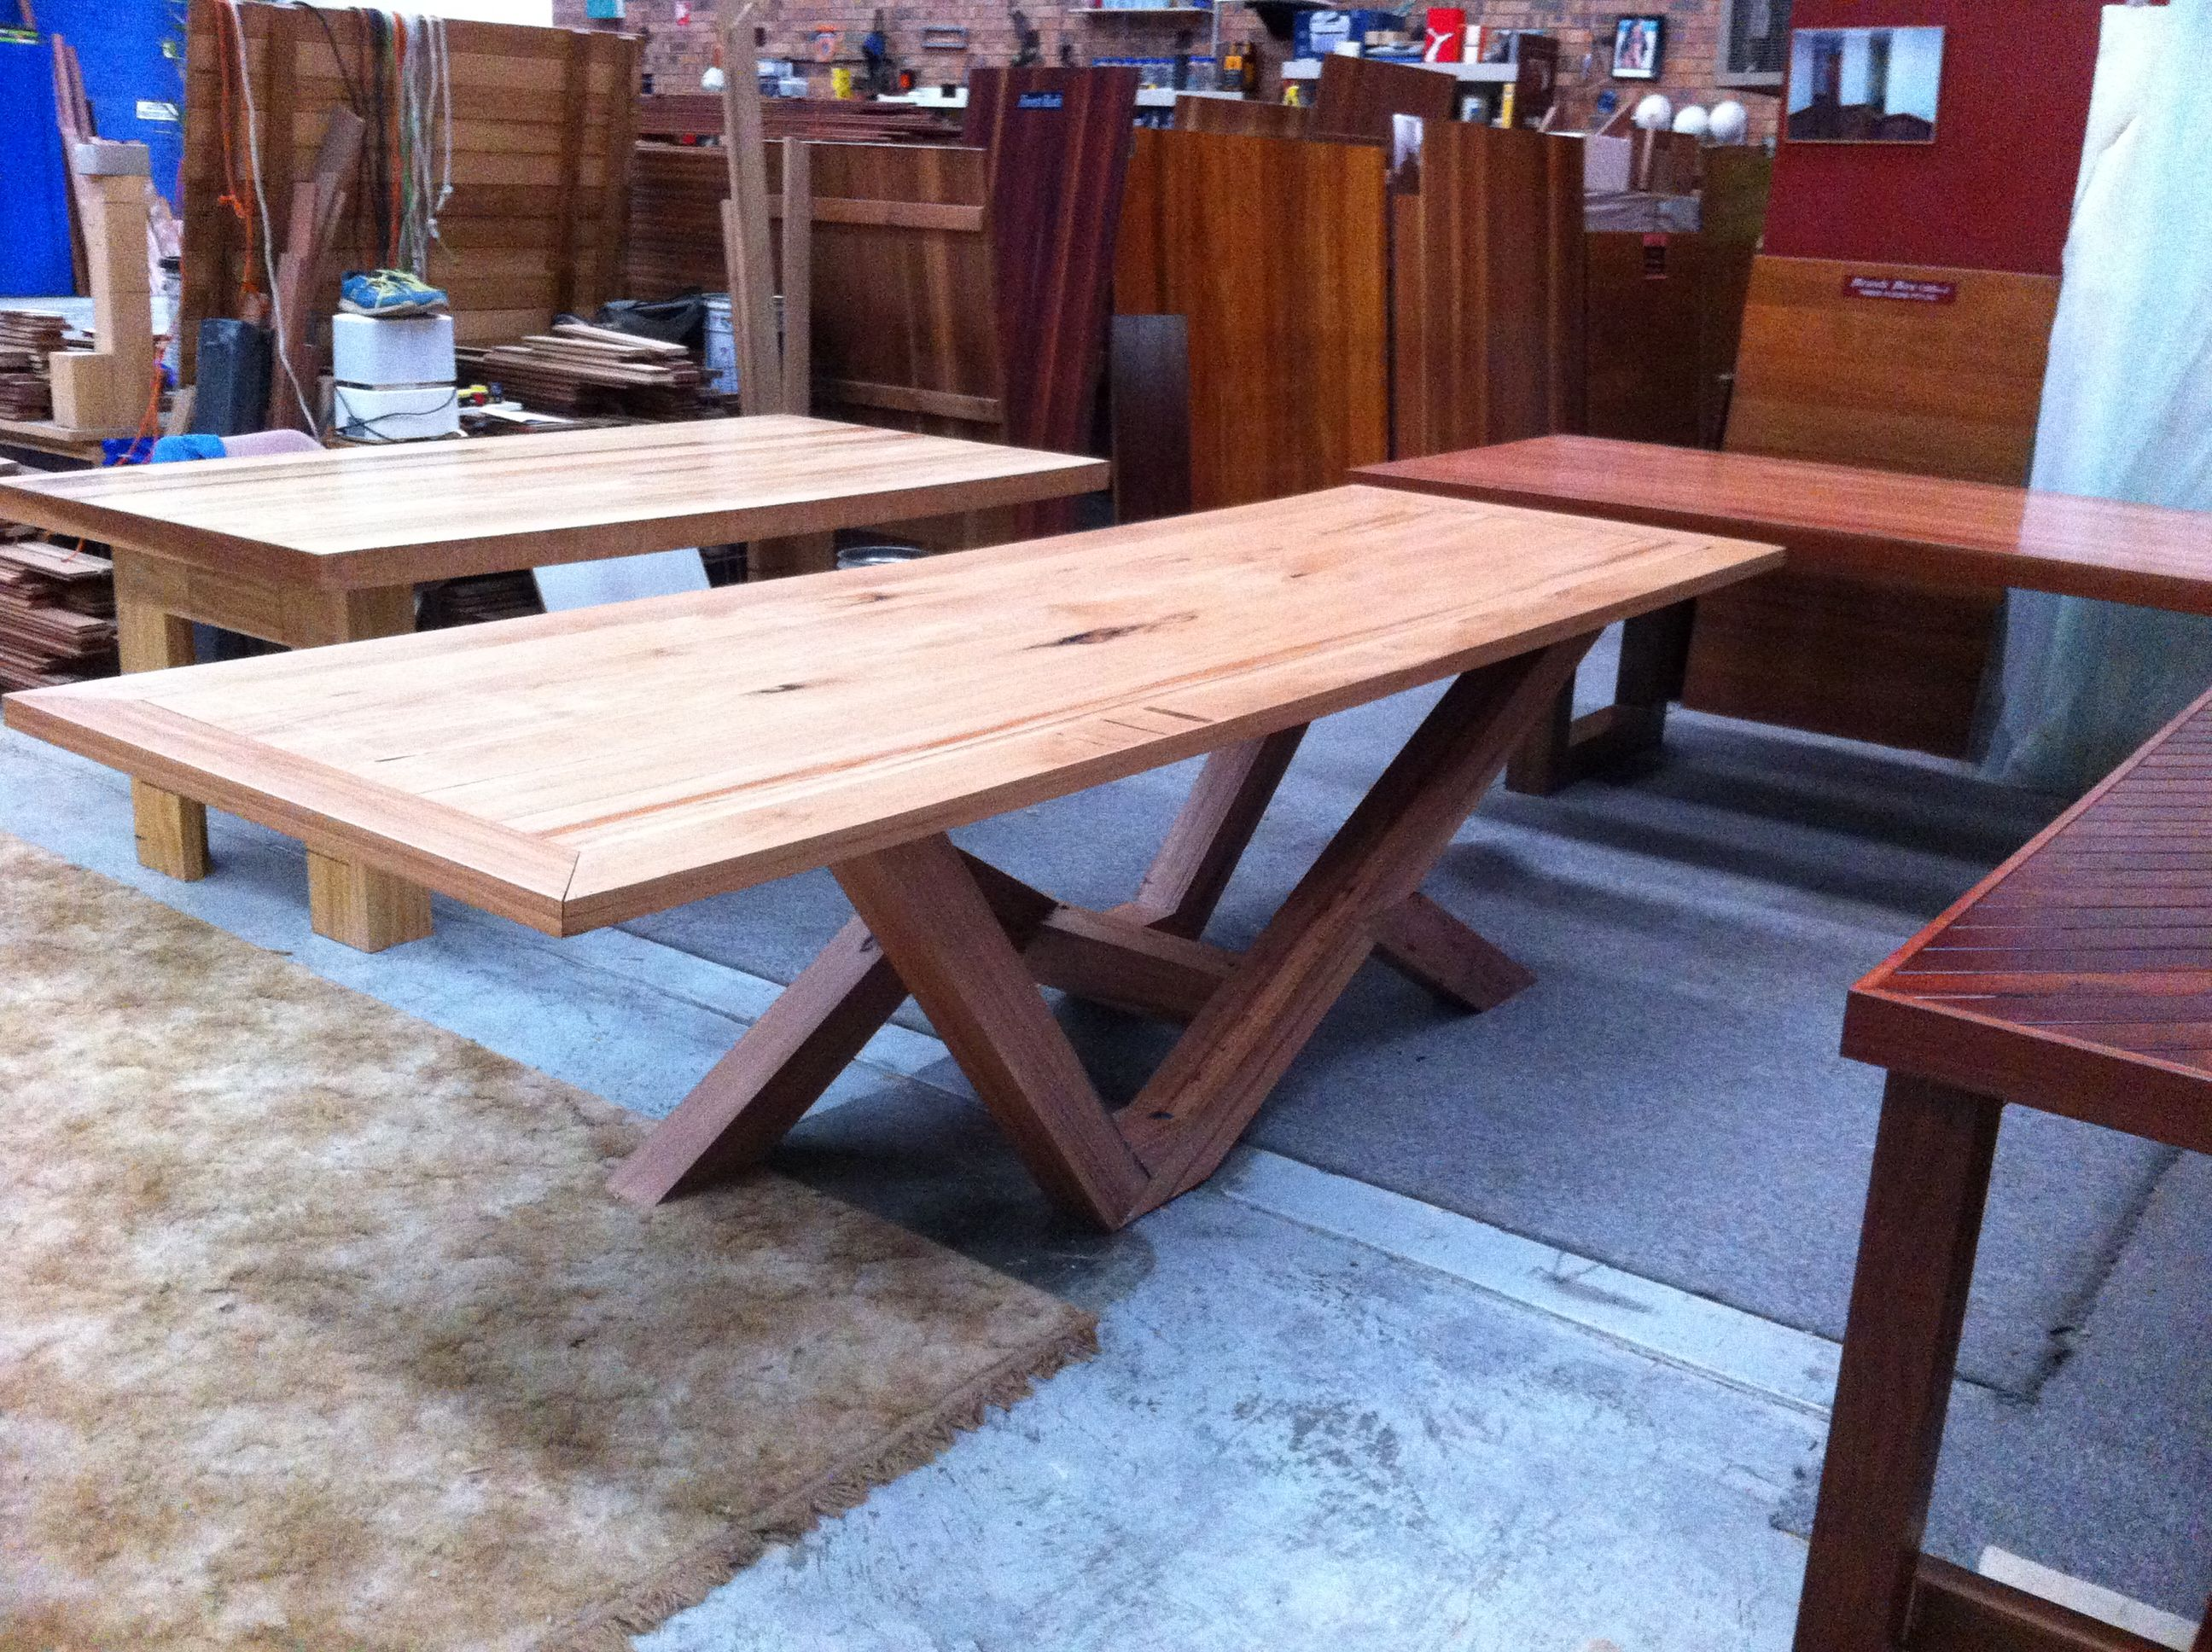 solid australian hardwood tongue and groove timber flooring solid australian hardwood tongue and groove timber flooring custom built dining table made using